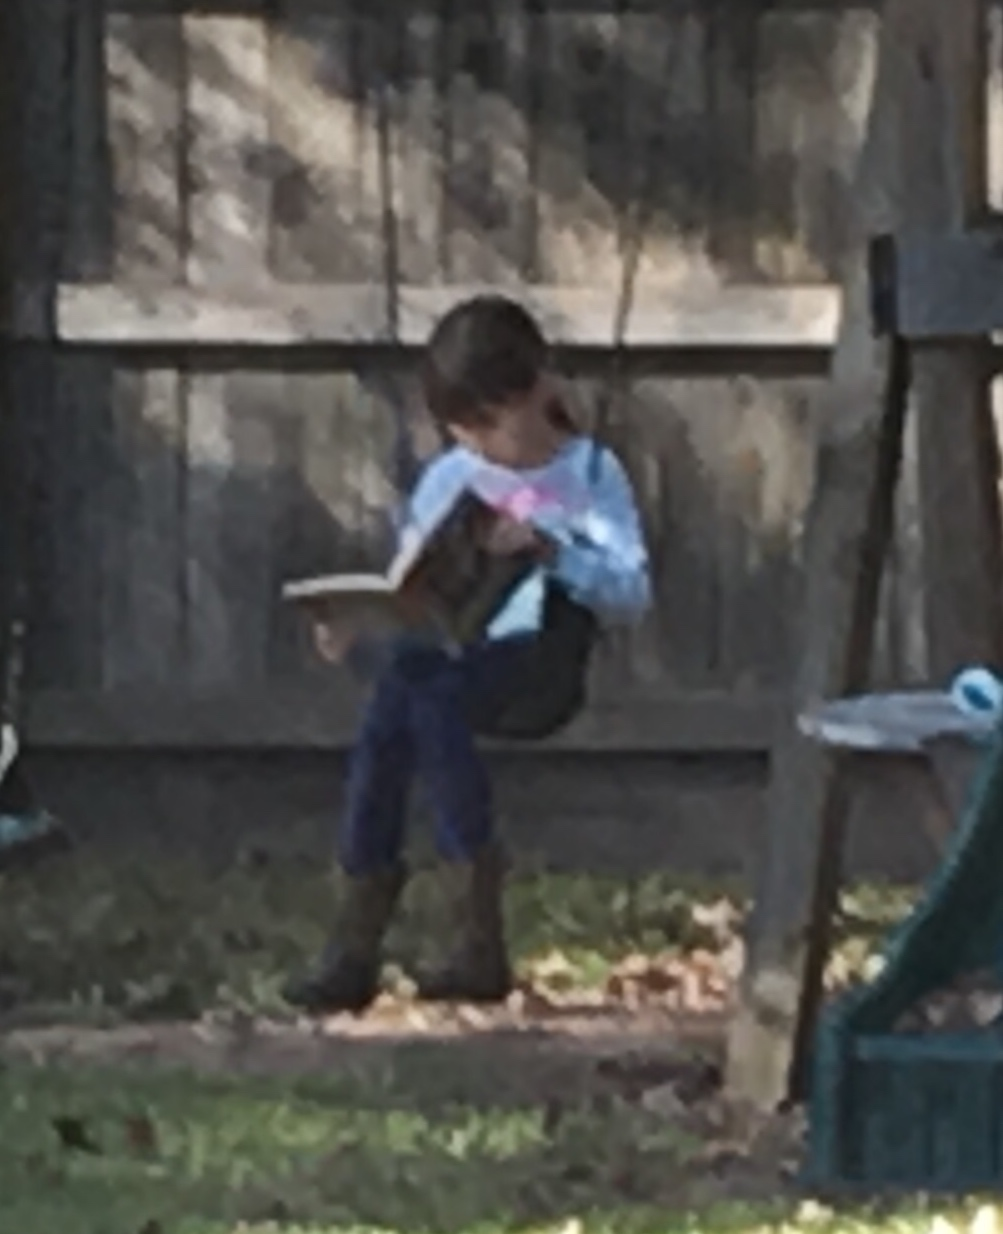 Much of our school work is done outdoors when the weather is nice. Why not? That is one of our joys in home educating!